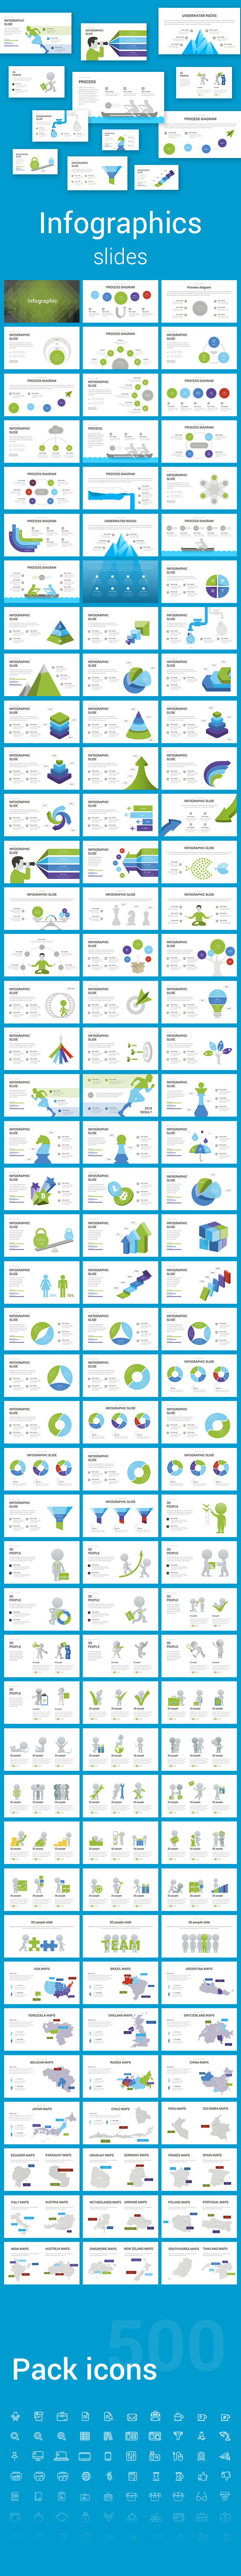 Infographic Powerpoint Slides - Creative PowerPoint Templates